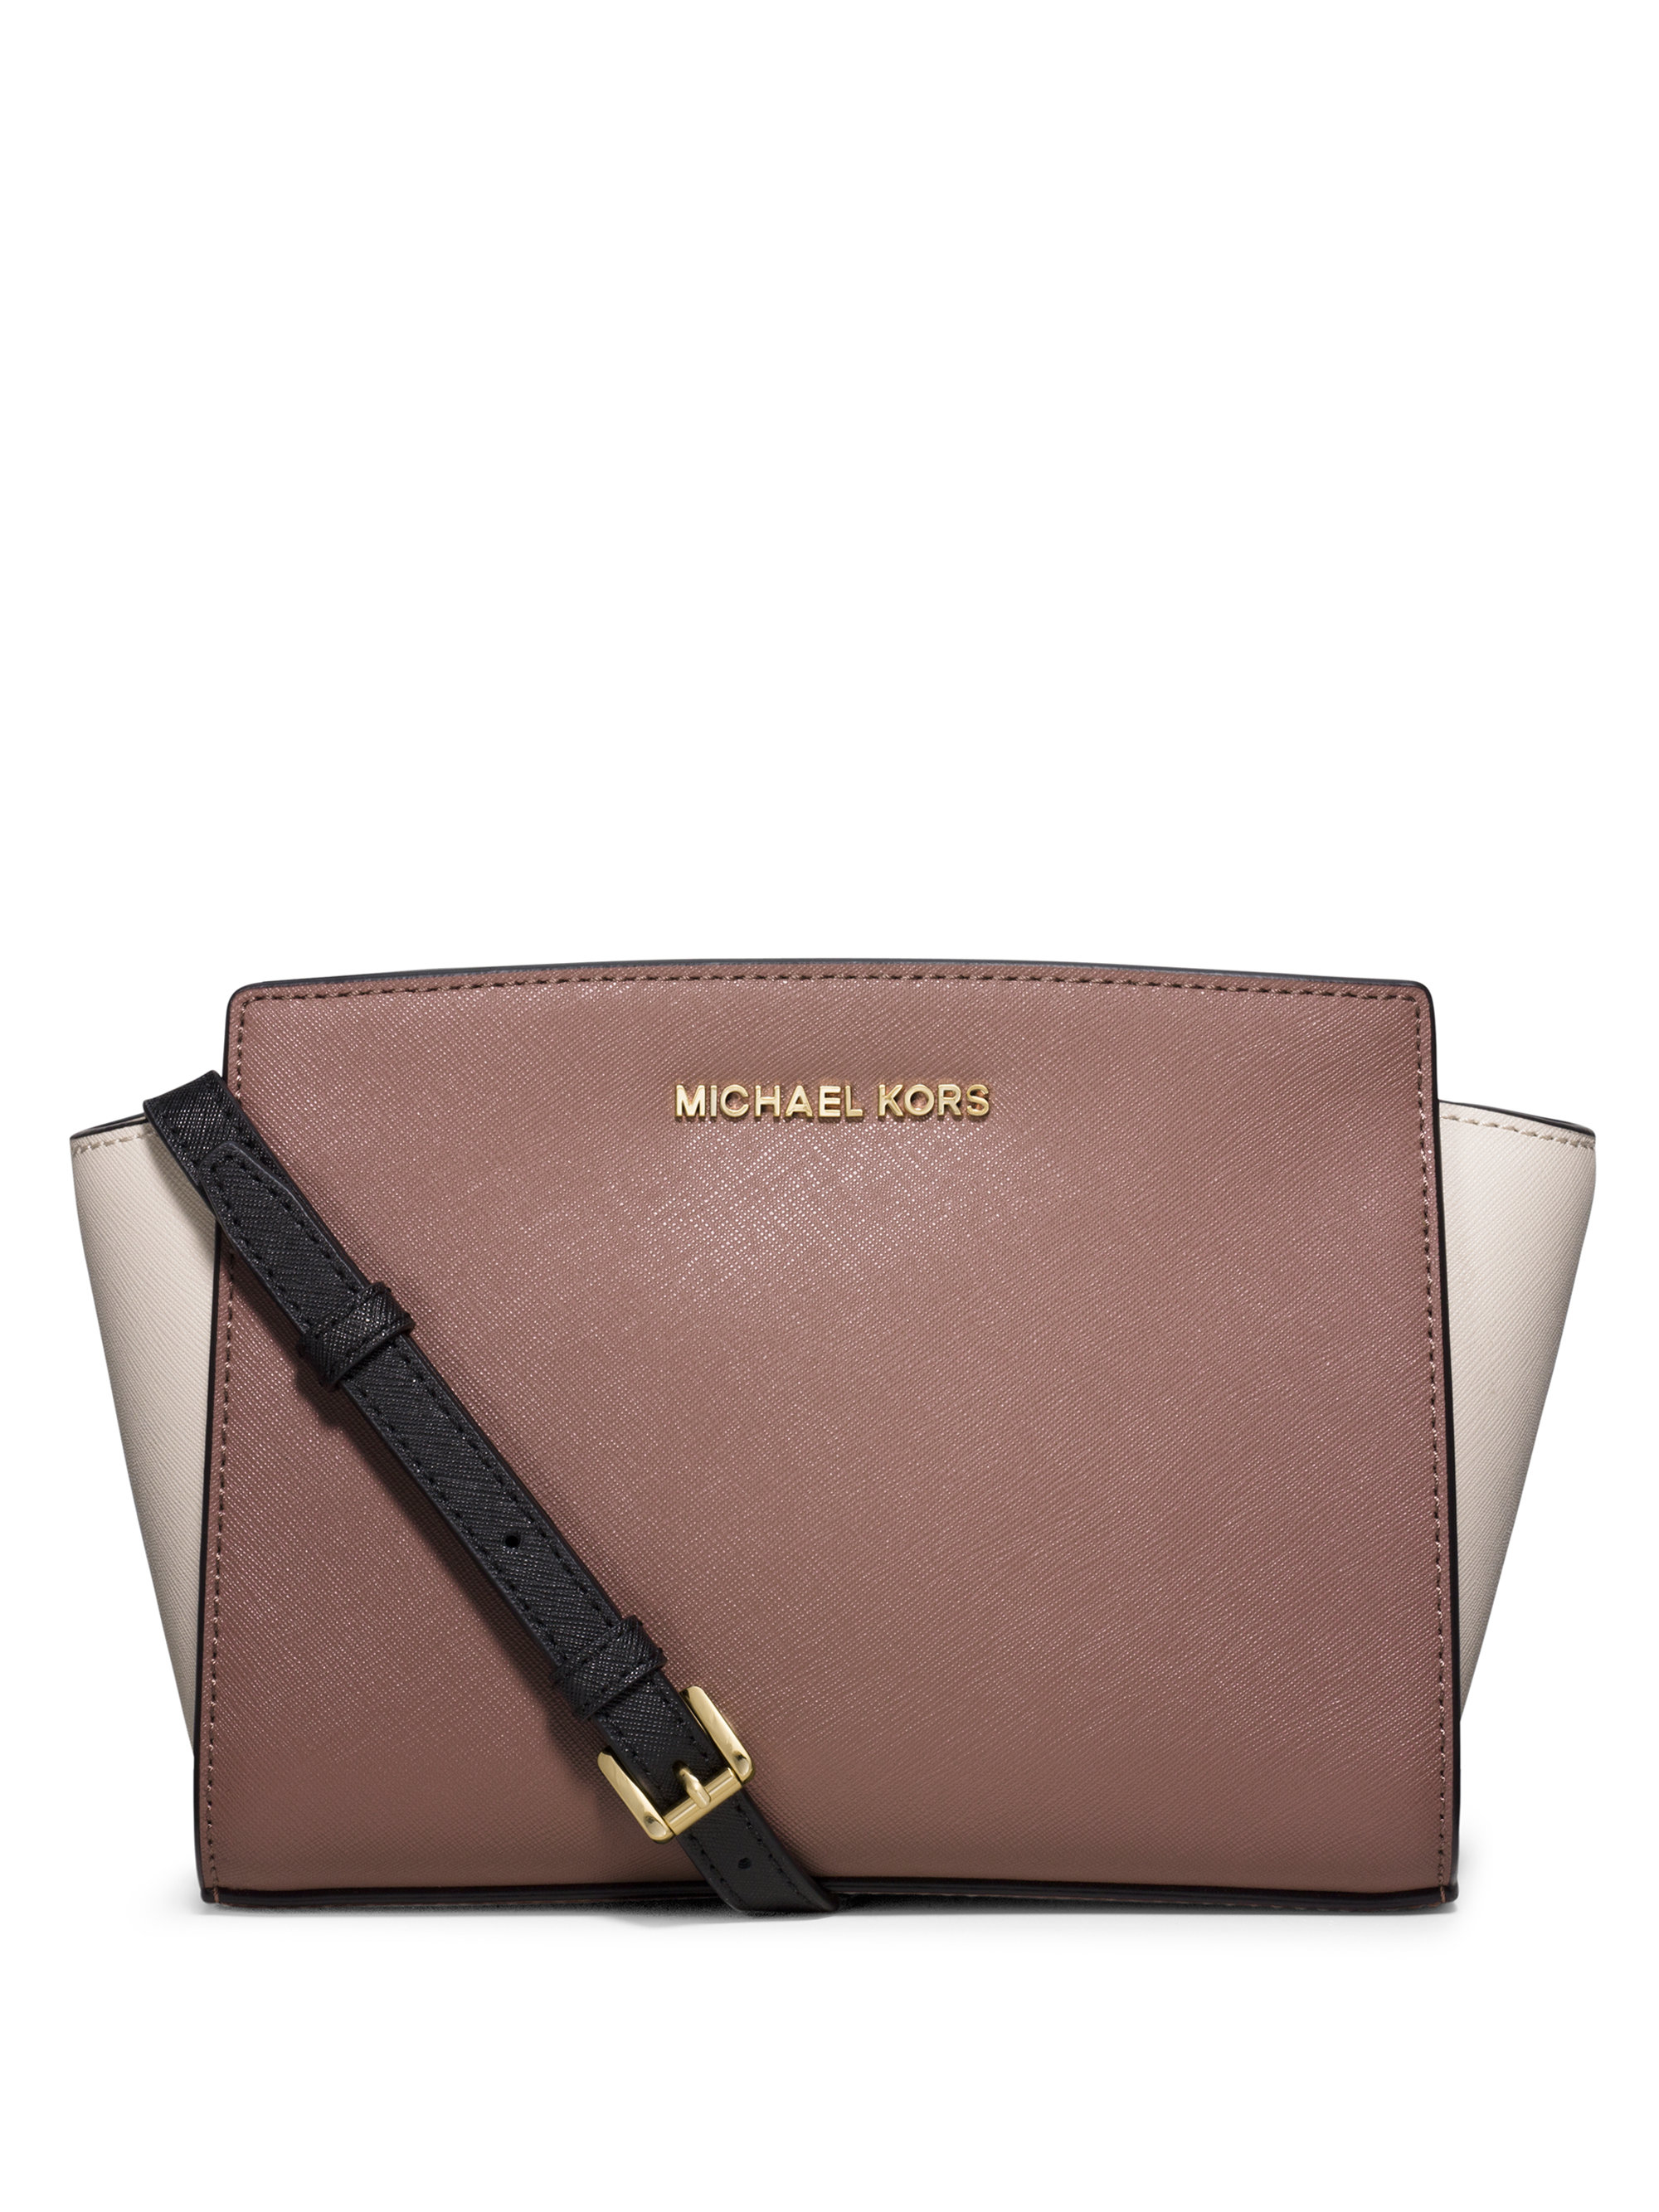 f9152d26c8c511 Gallery. Previously sold at: Saks Fifth Avenue · Women's Michael By Michael  Kors Selma